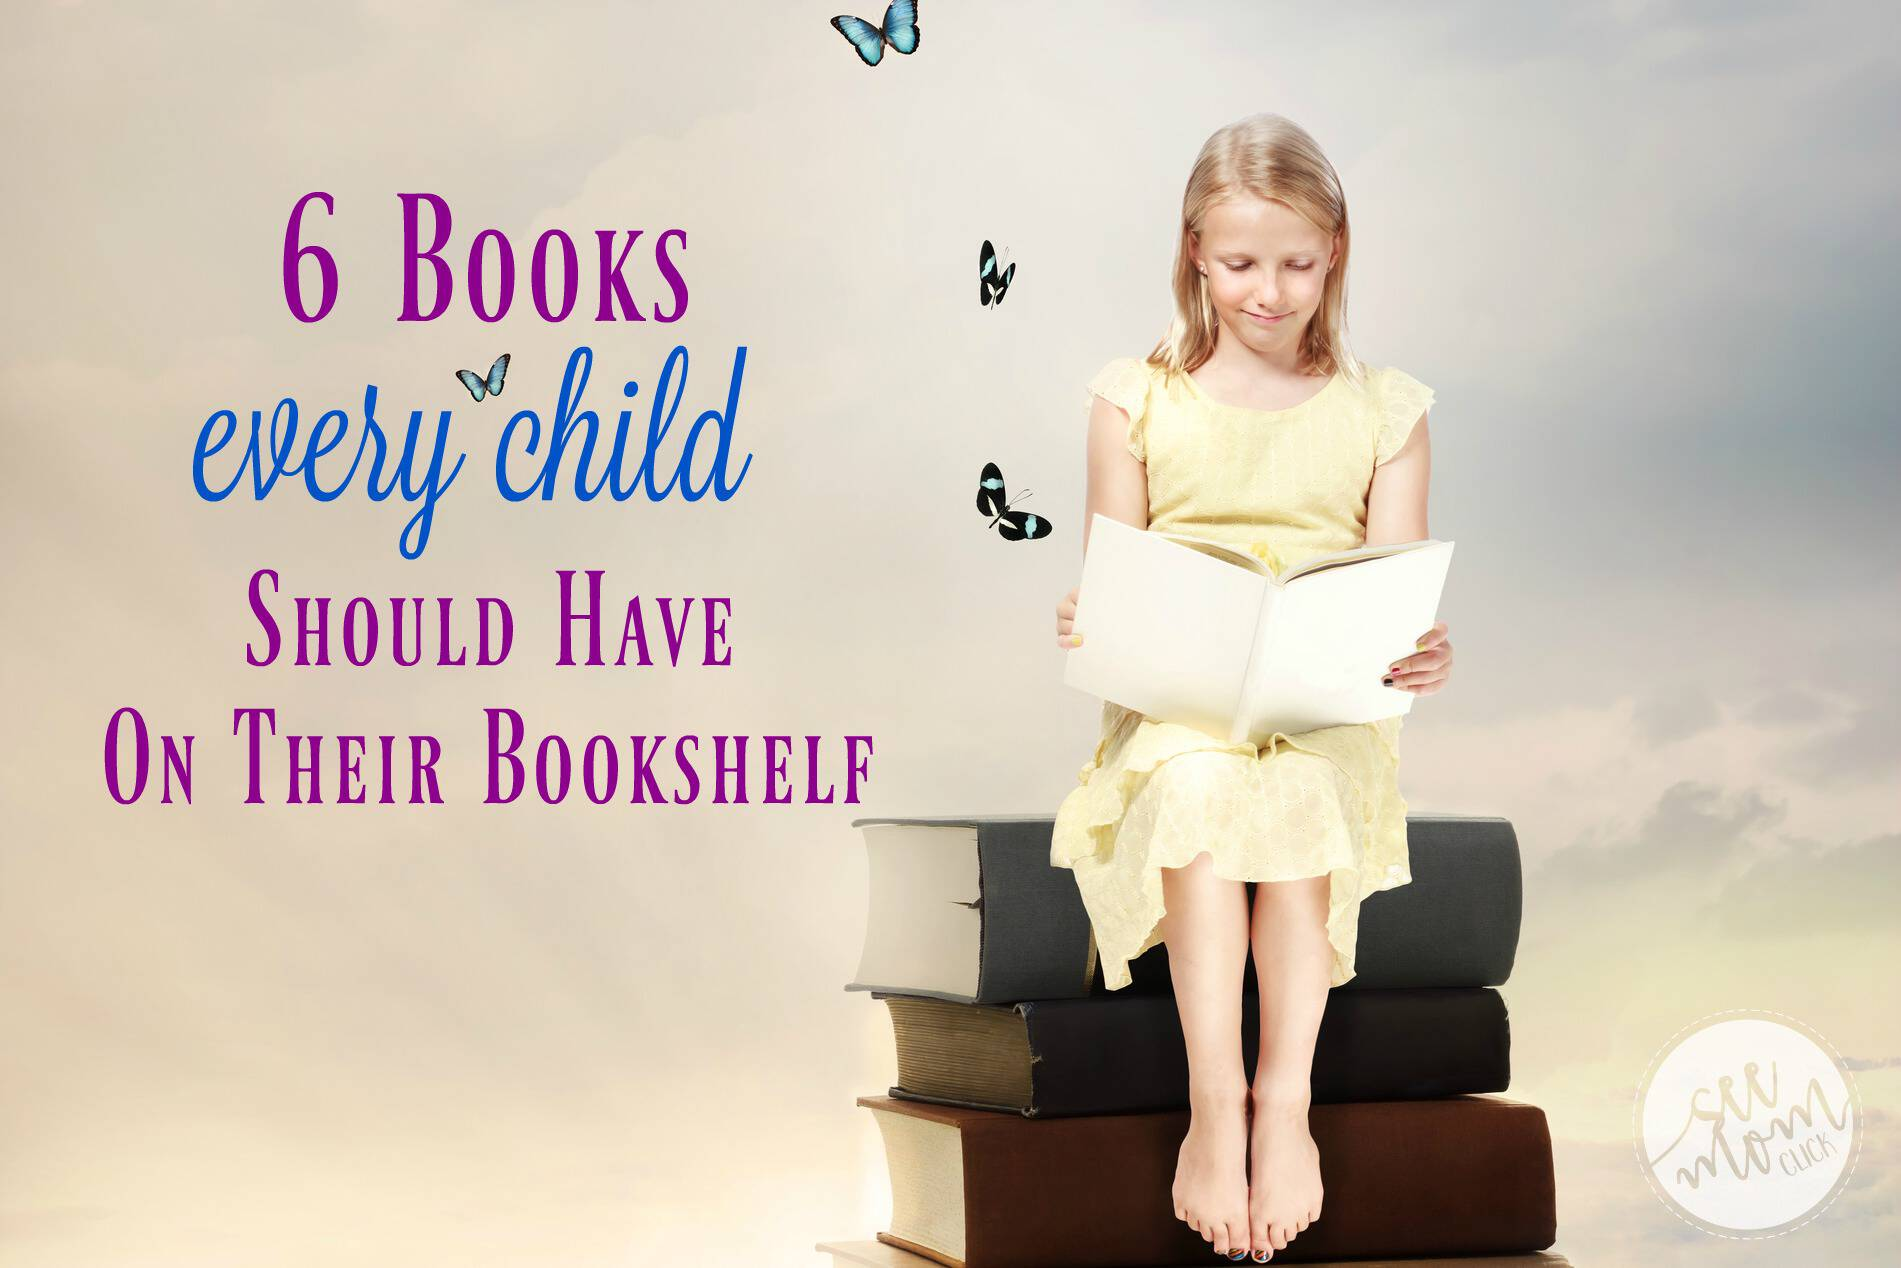 books-every-childReading to my kids has been one of my greatest parenting joys. Here are 6 books that every child should have on their bookshelf. Happy reading!